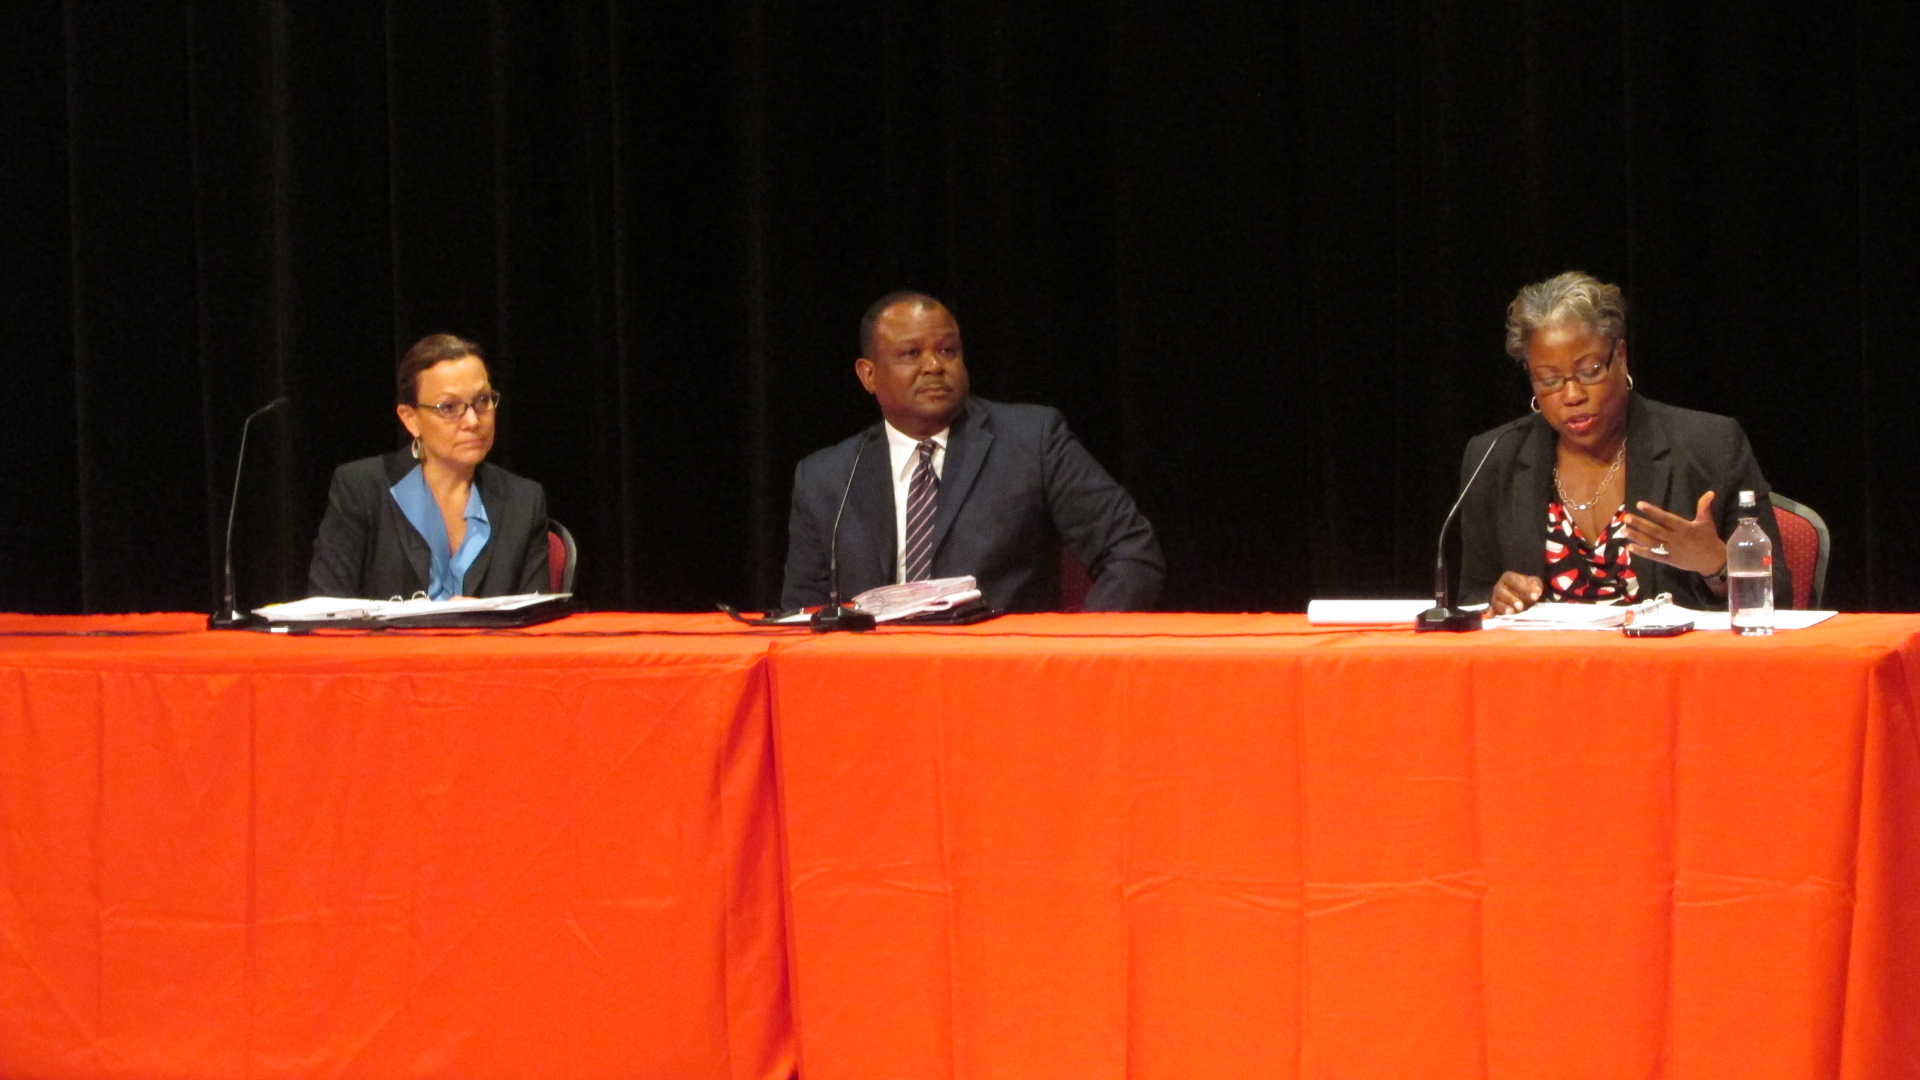 Leaders of the UH Campus Carry work group lead a forum on the subject